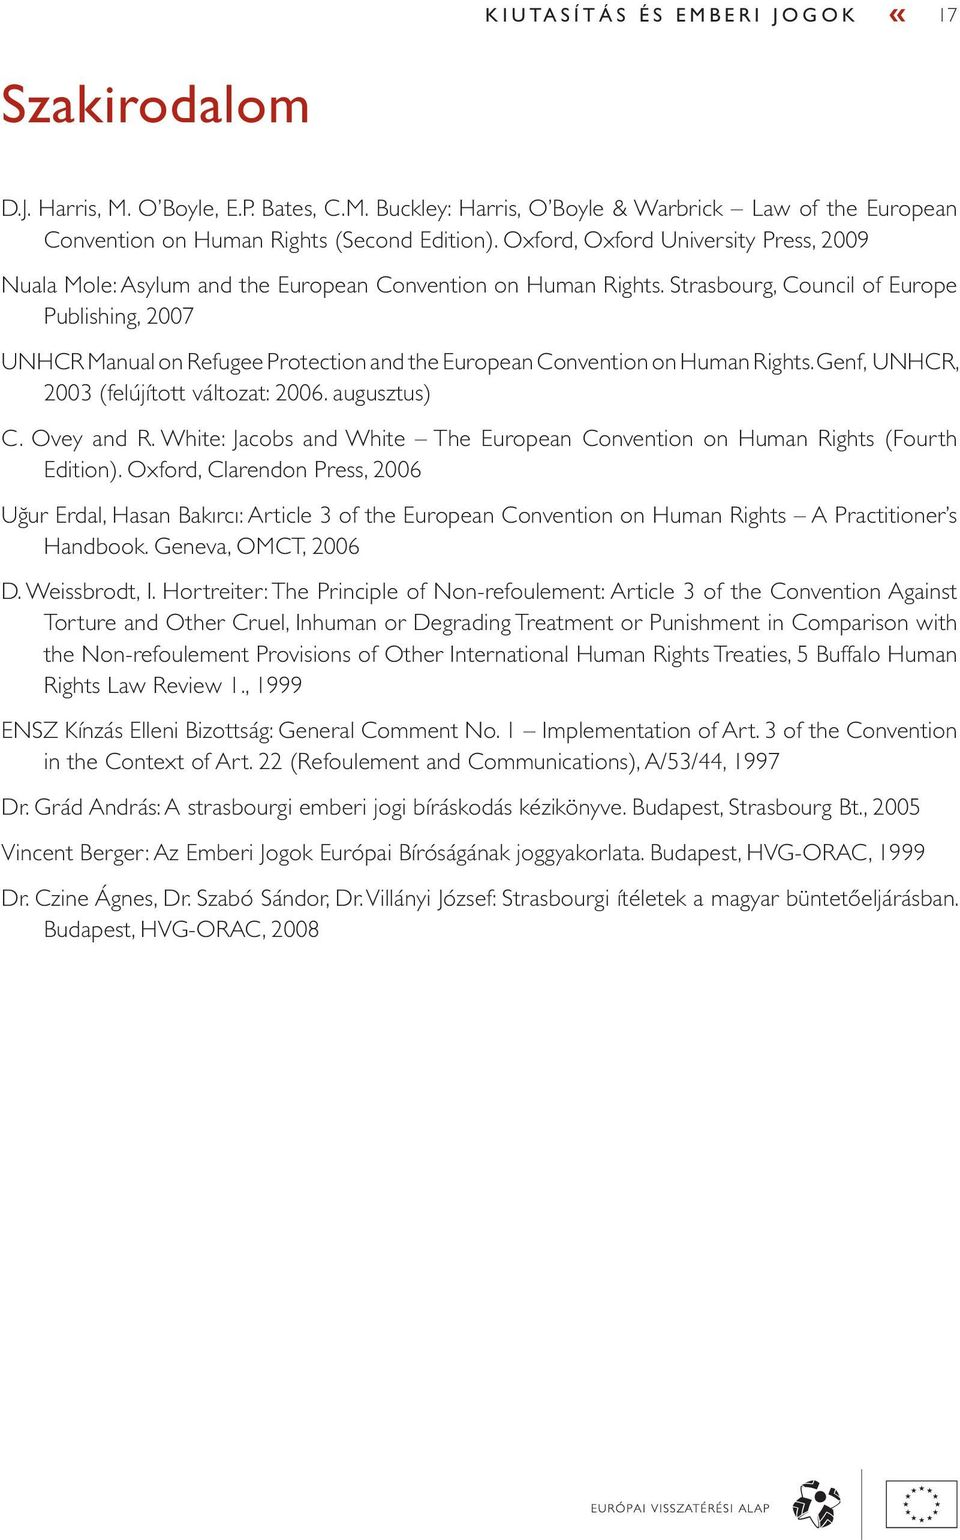 Strasbourg, Council of Europe Publishing, 2007 UNHCR Manual on Refugee Protection and the European Convention on Human Rights. Genf, UNHCR, 2003 (felújított változat: 2006. augusztus) C. Ovey and R.